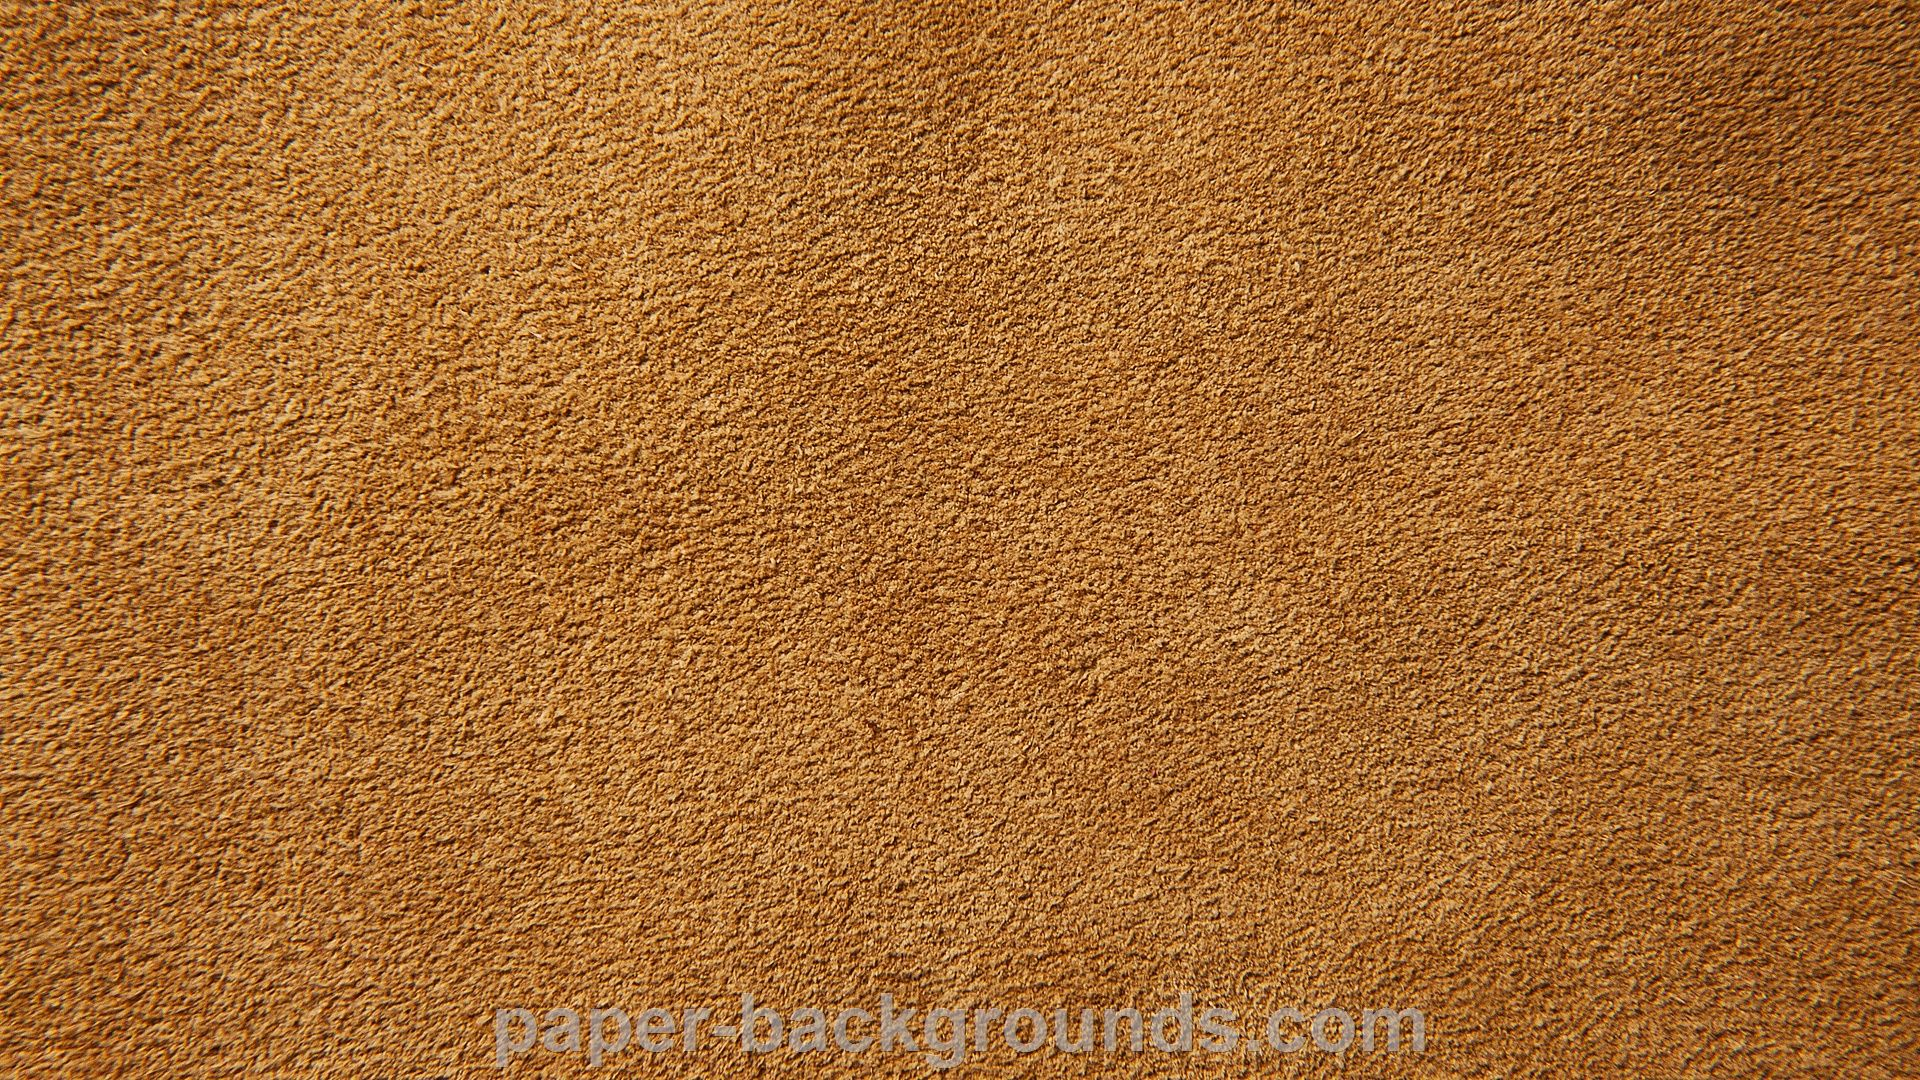 fluffy | 3D & CG | Leather texture, Texture background hd